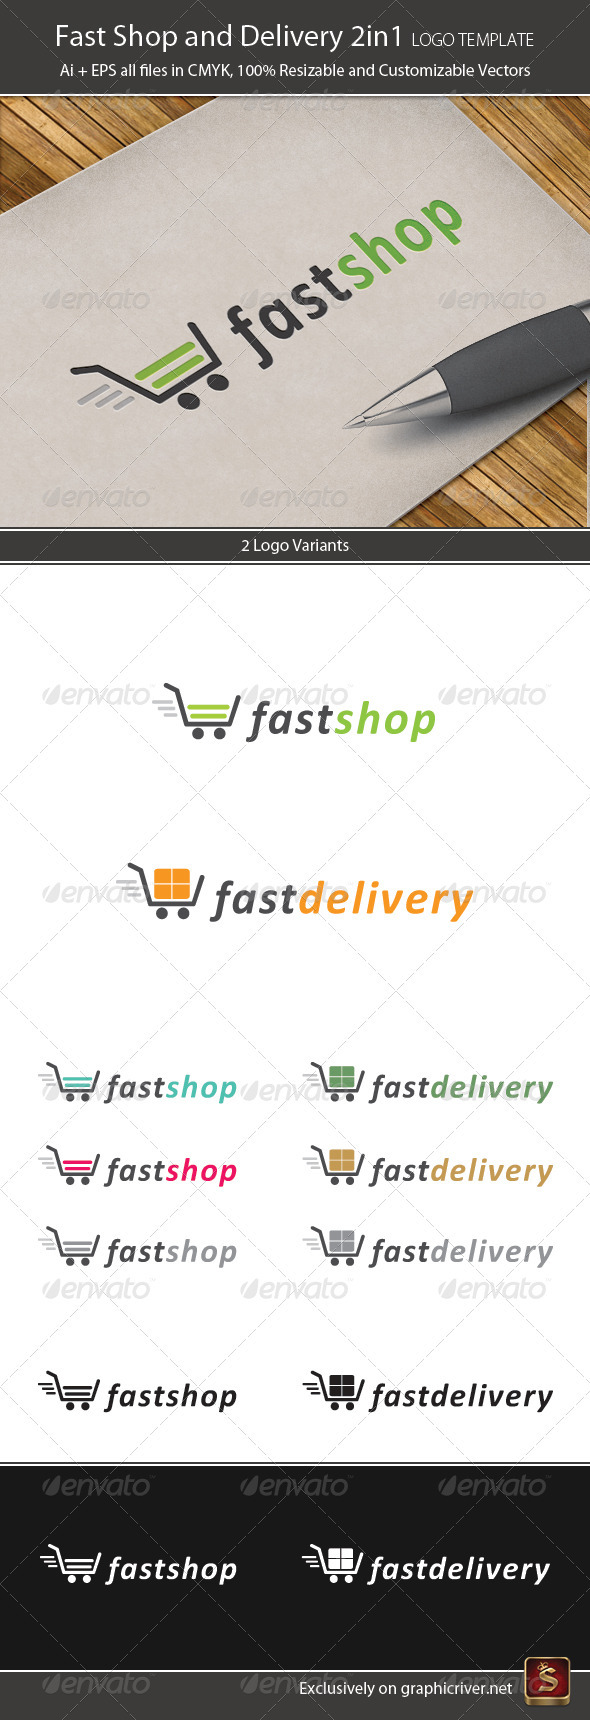 Fast Shop And Delivery 2in1 Logo Template - Vector Abstract